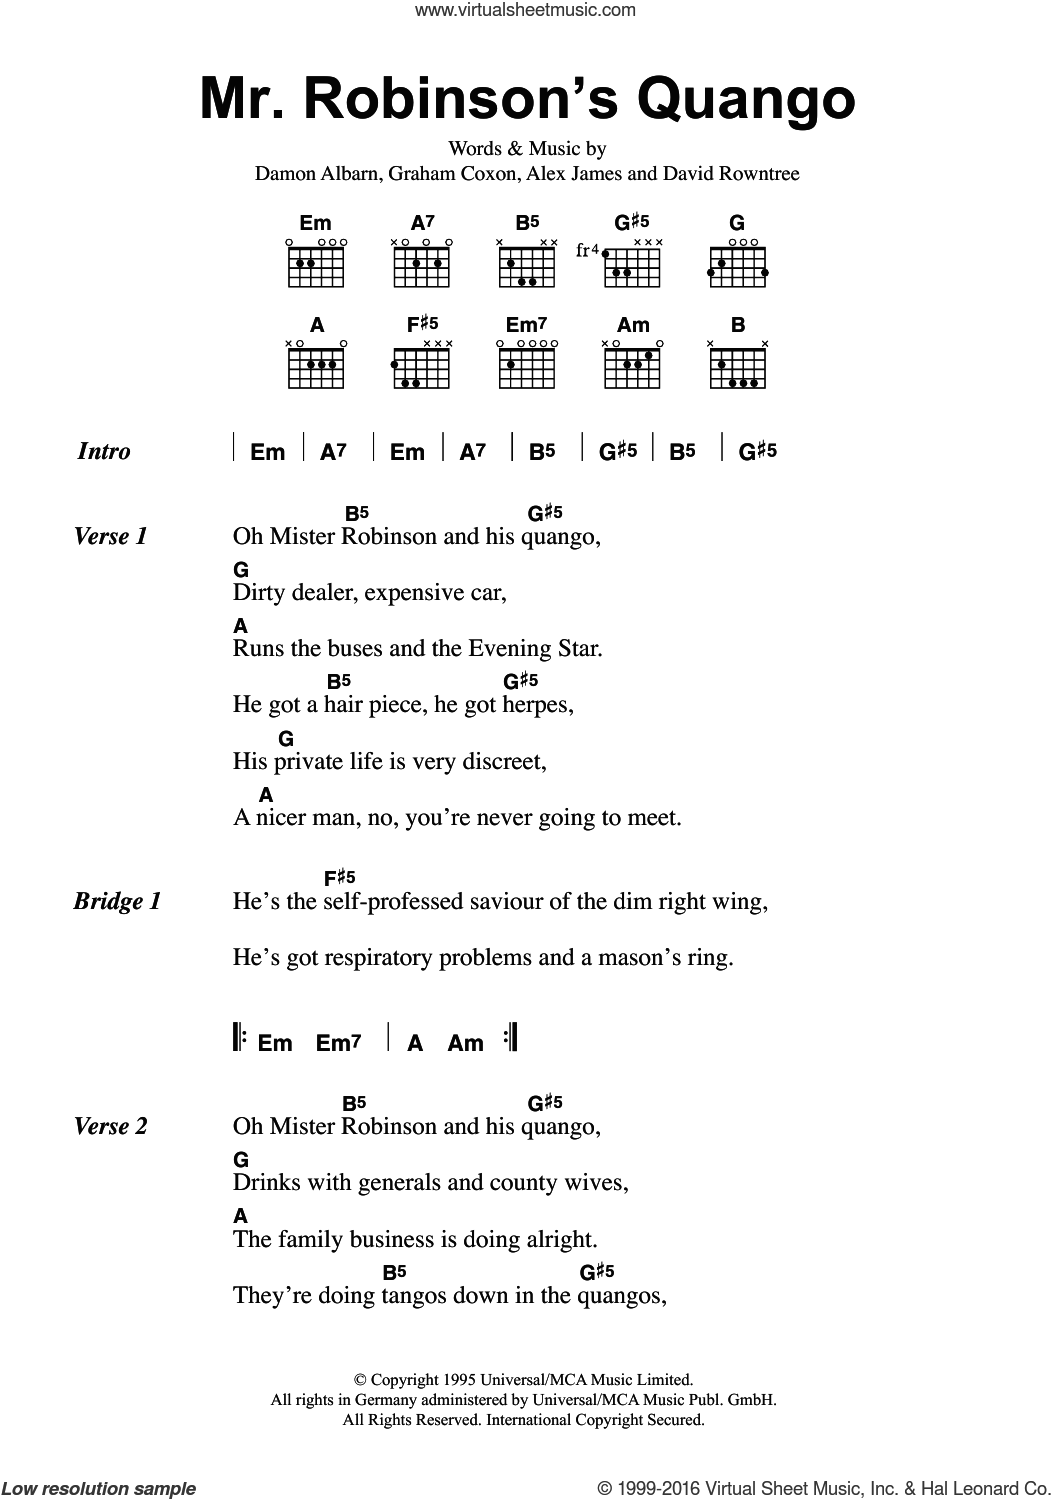 Mr. Robinson's Quango sheet music for guitar (chords) by Blur, Alex James, Damon Albarn, David Rowntree and Graham Coxon, intermediate